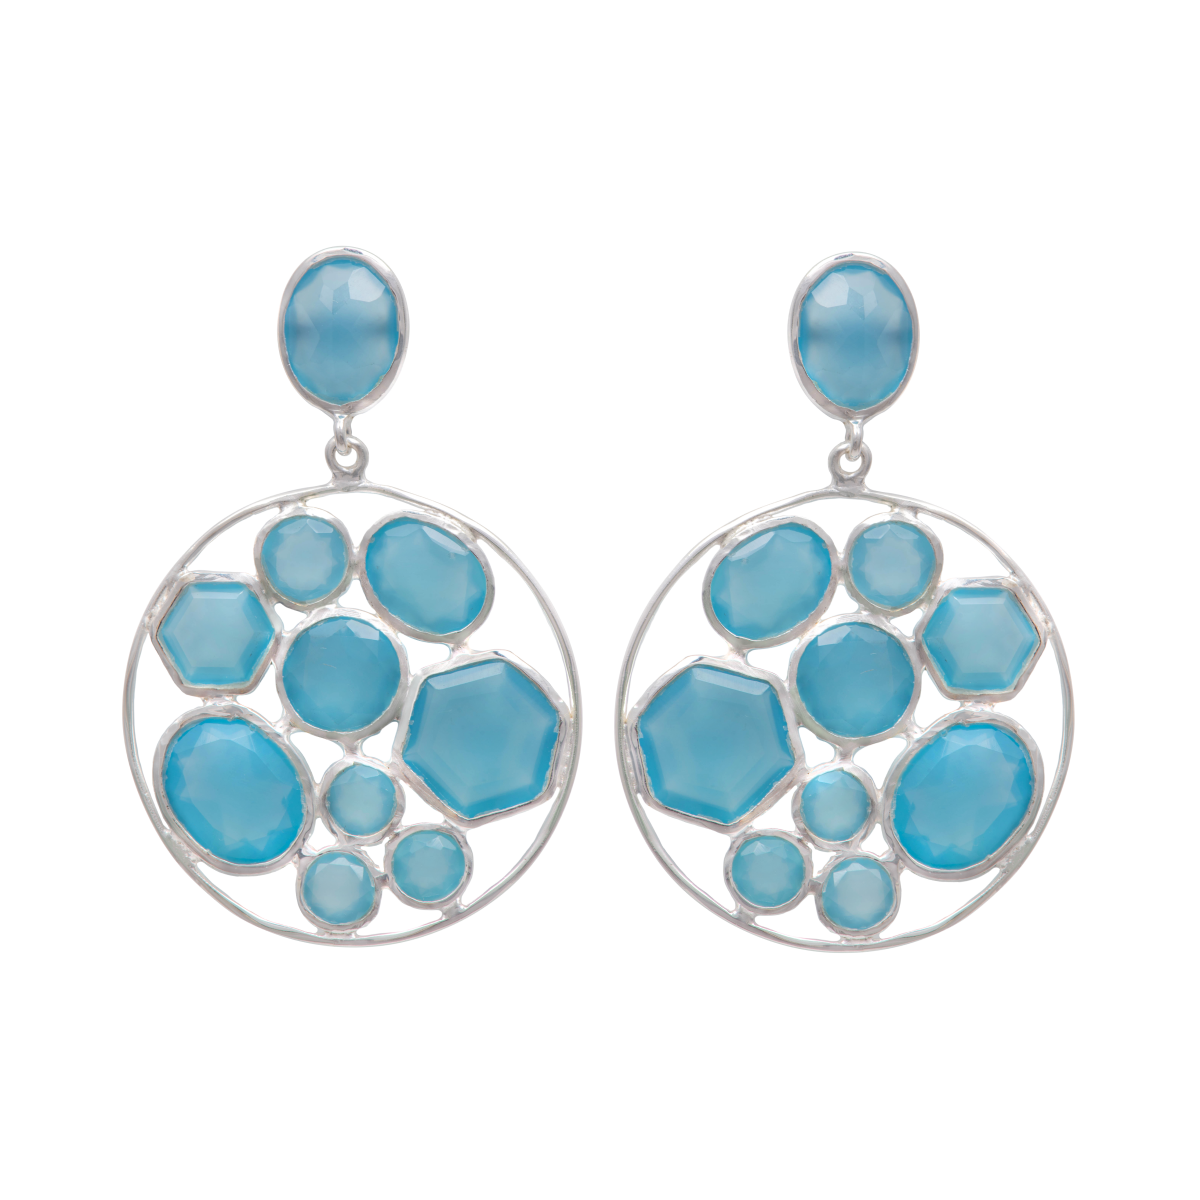 Long Gemstone Earrings with a Round Disc Drop with Stones in Sterling Silver - Aqua Chalcedony and Blue Topaz